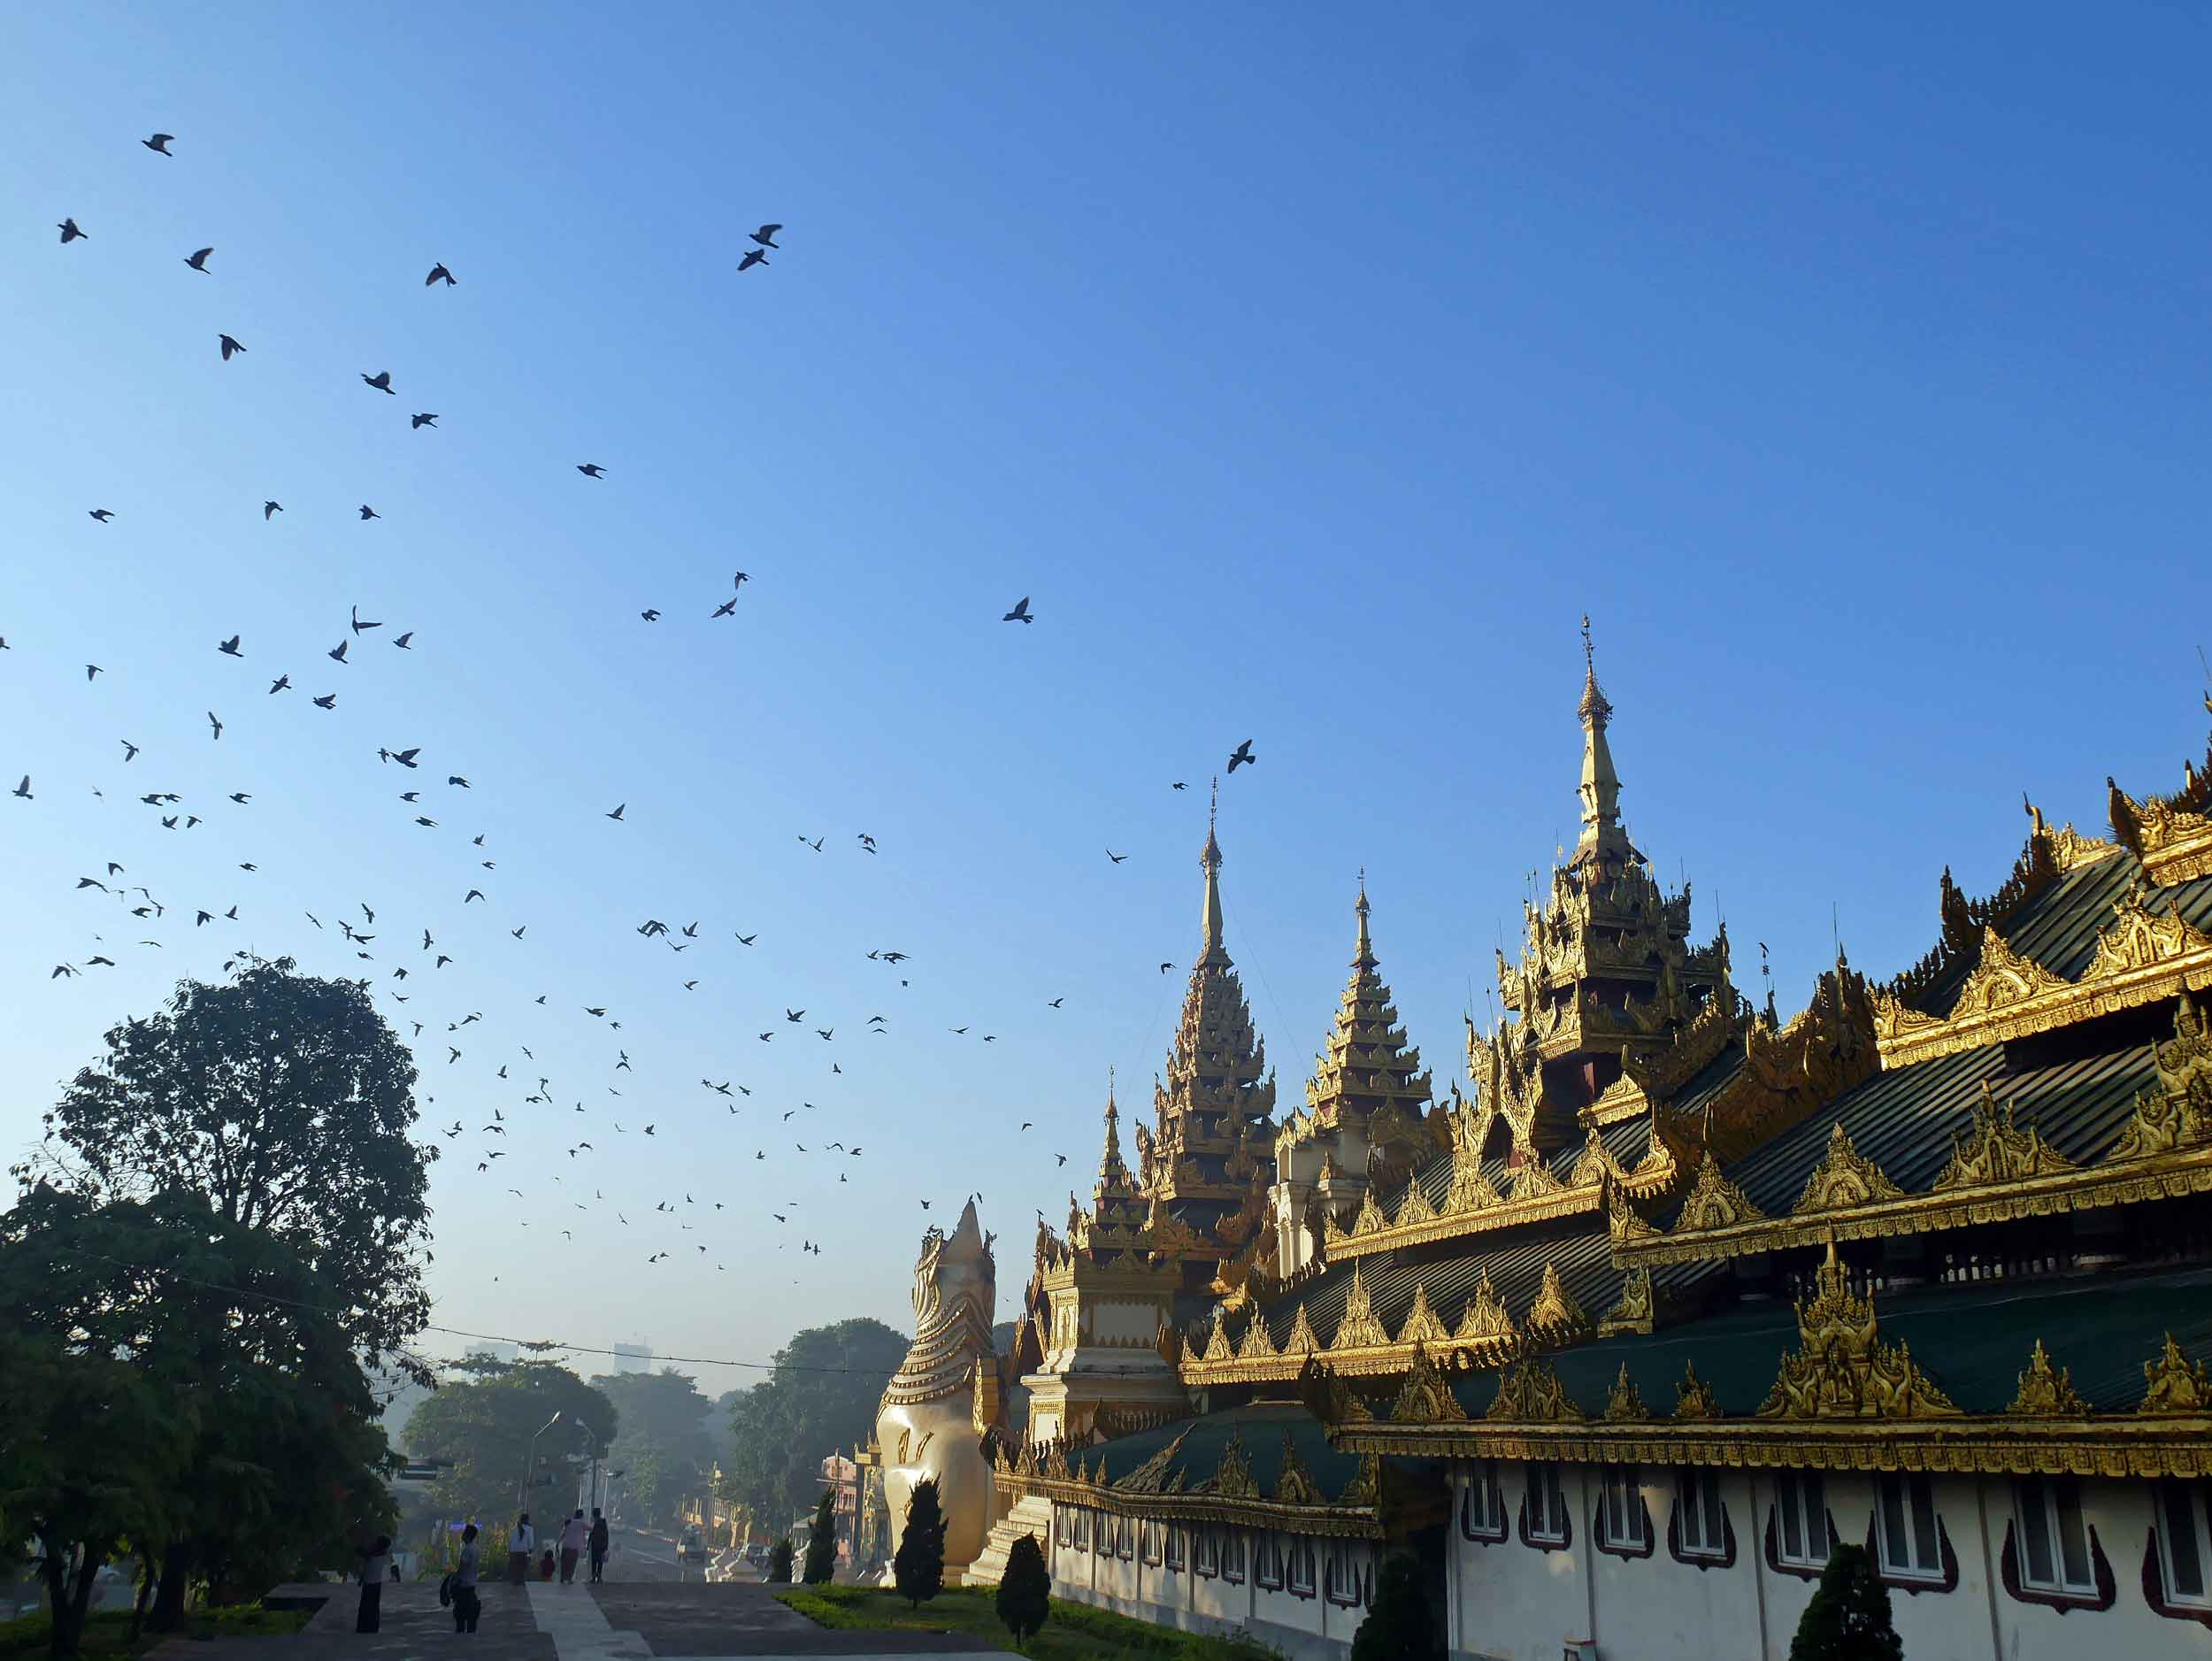 The sprawling Shwedagon complex is dotted with small shrines and temples surrounding the main pagoda (Feb 9).